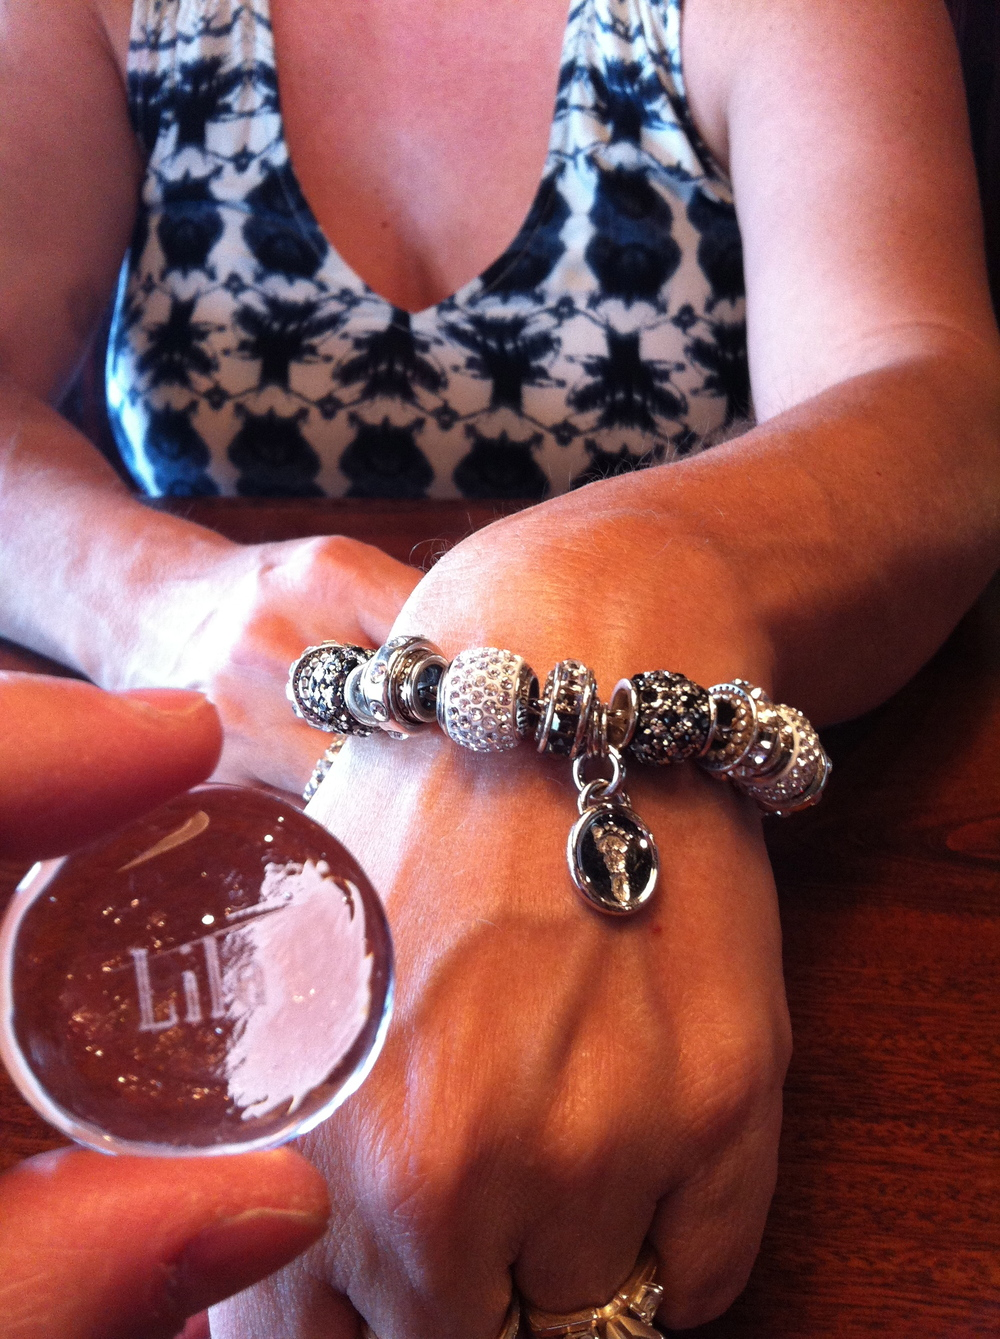 Lila stone with her footprint bracelet